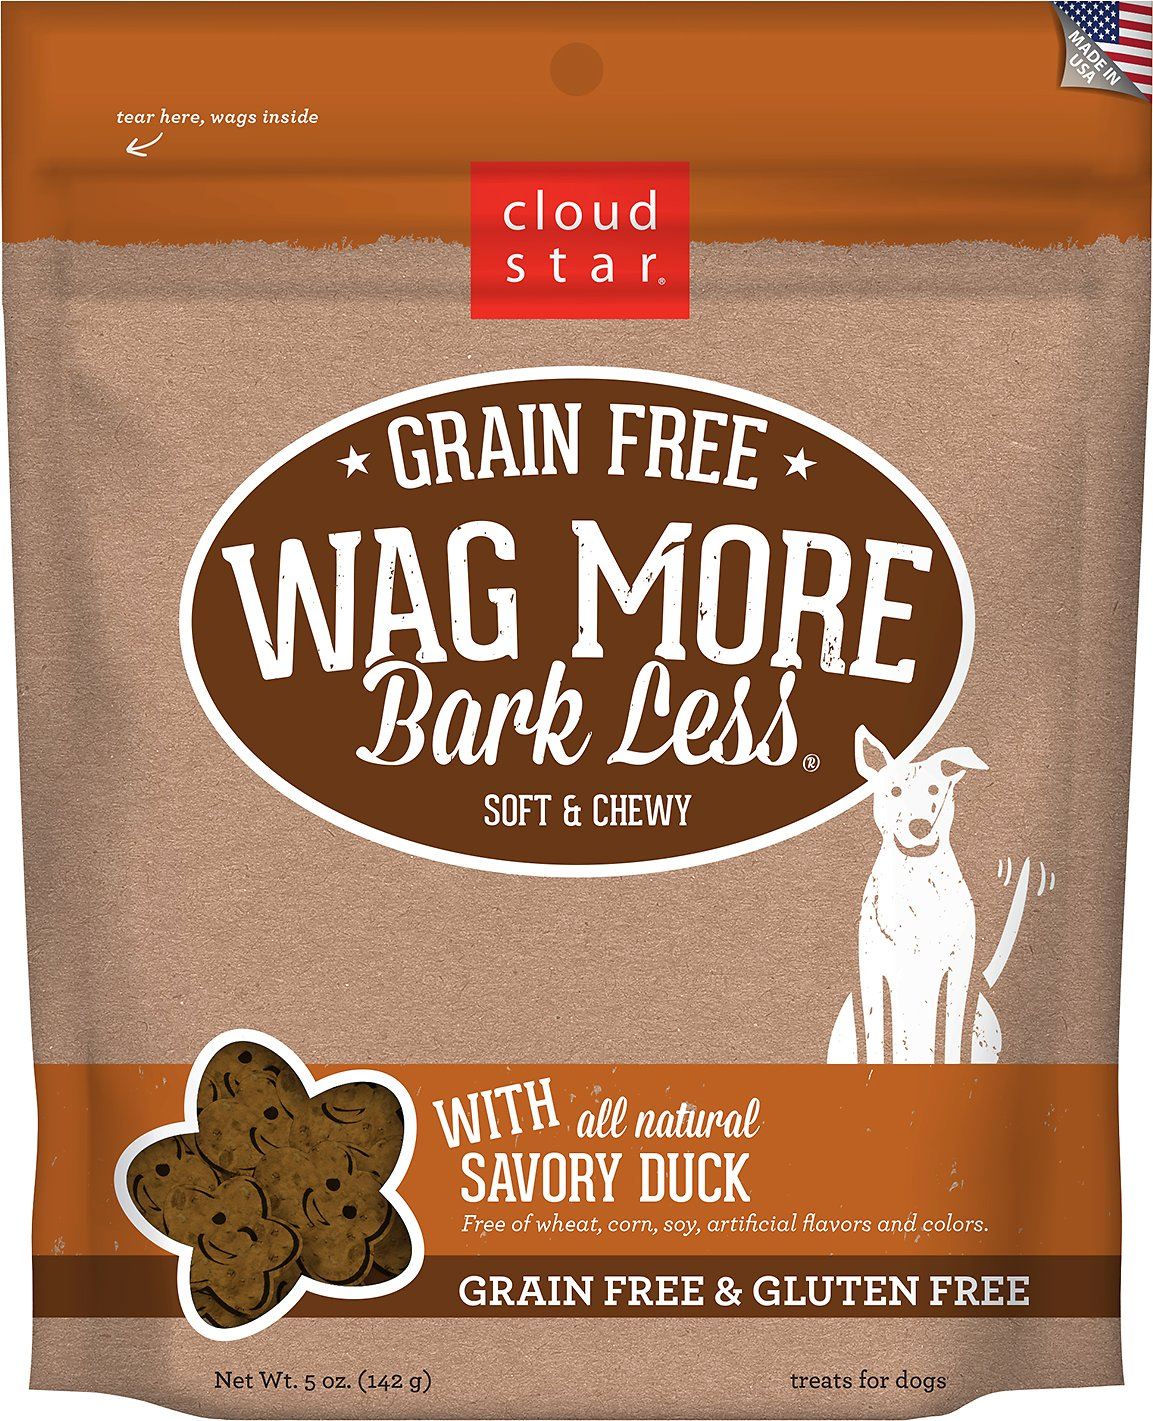 Cloud Star Wag More Bark Less Grain-Free Soft & Chewy with Savory Duck Dog Treats, 5-oz bag